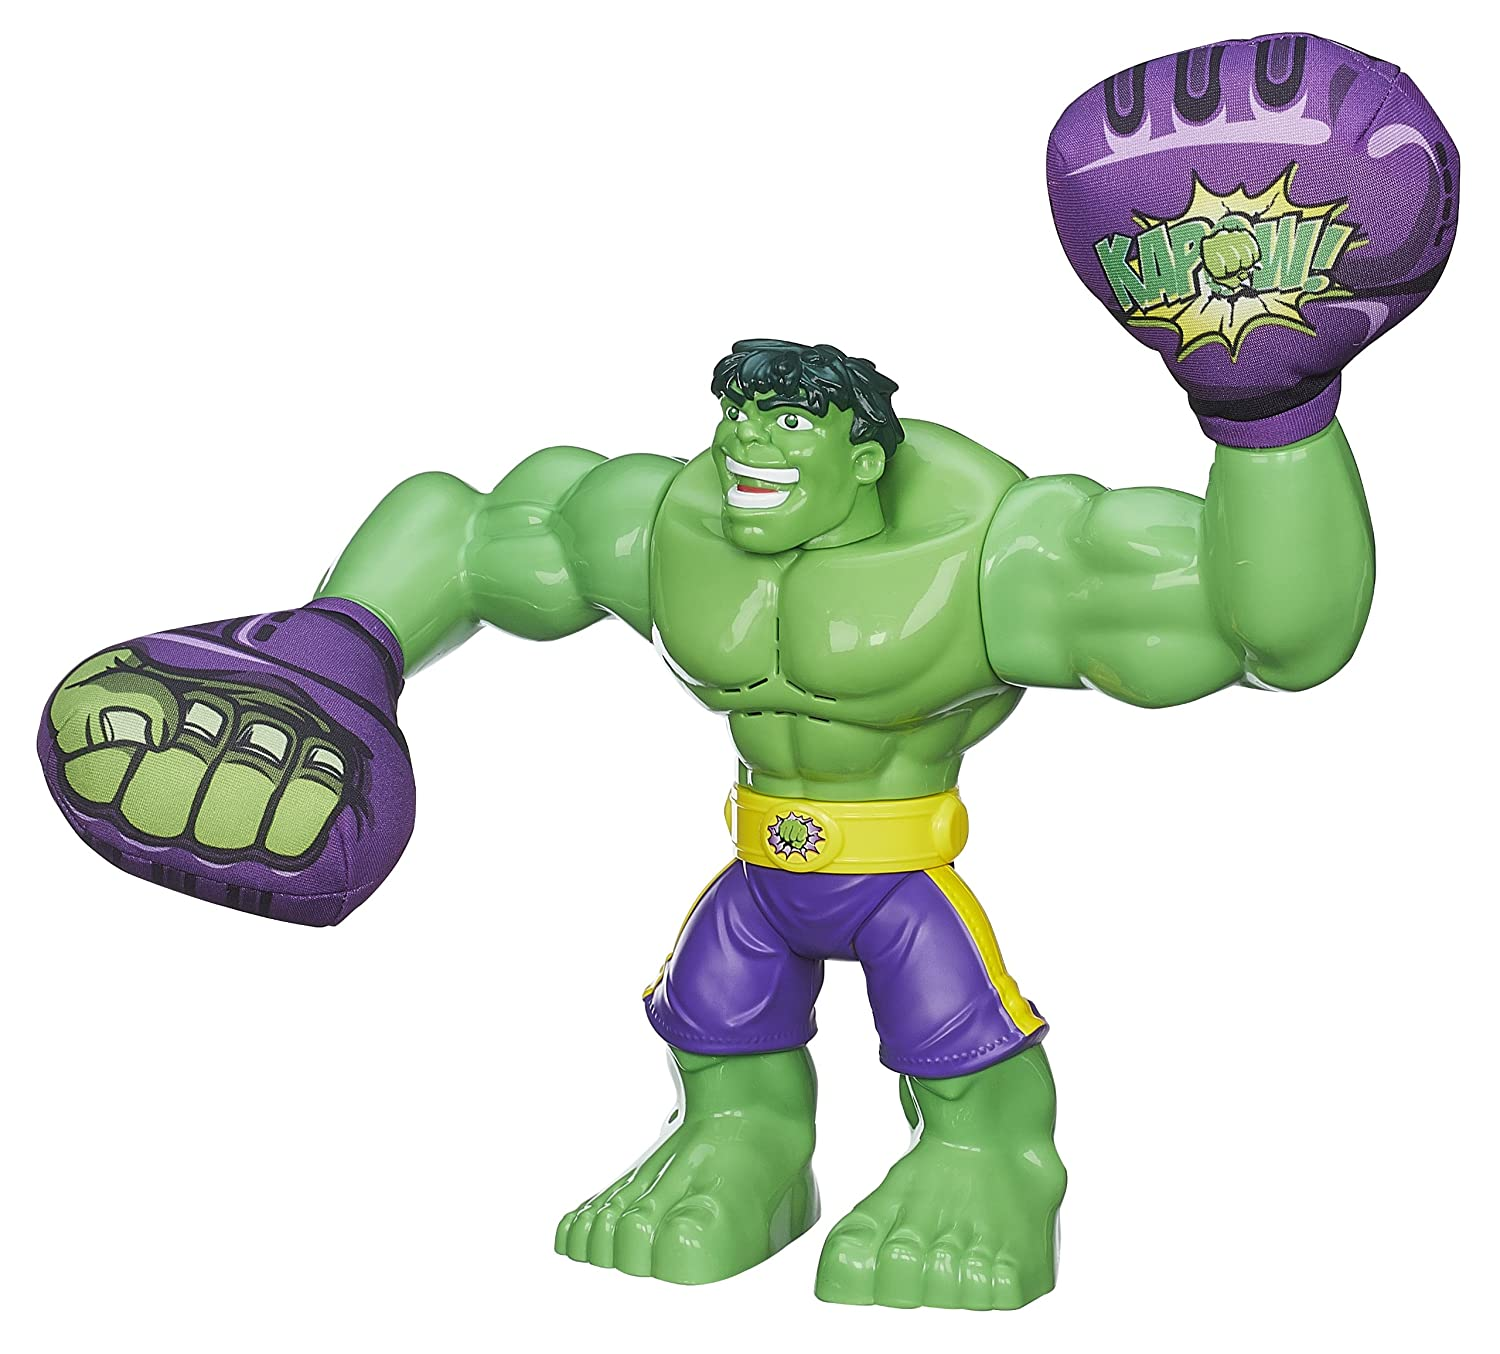 PLAYSKOOL HEROES MARVEL SUPER HERO ADVENTURES SMASH ACTION HULK FIGURE jetzt bestellen